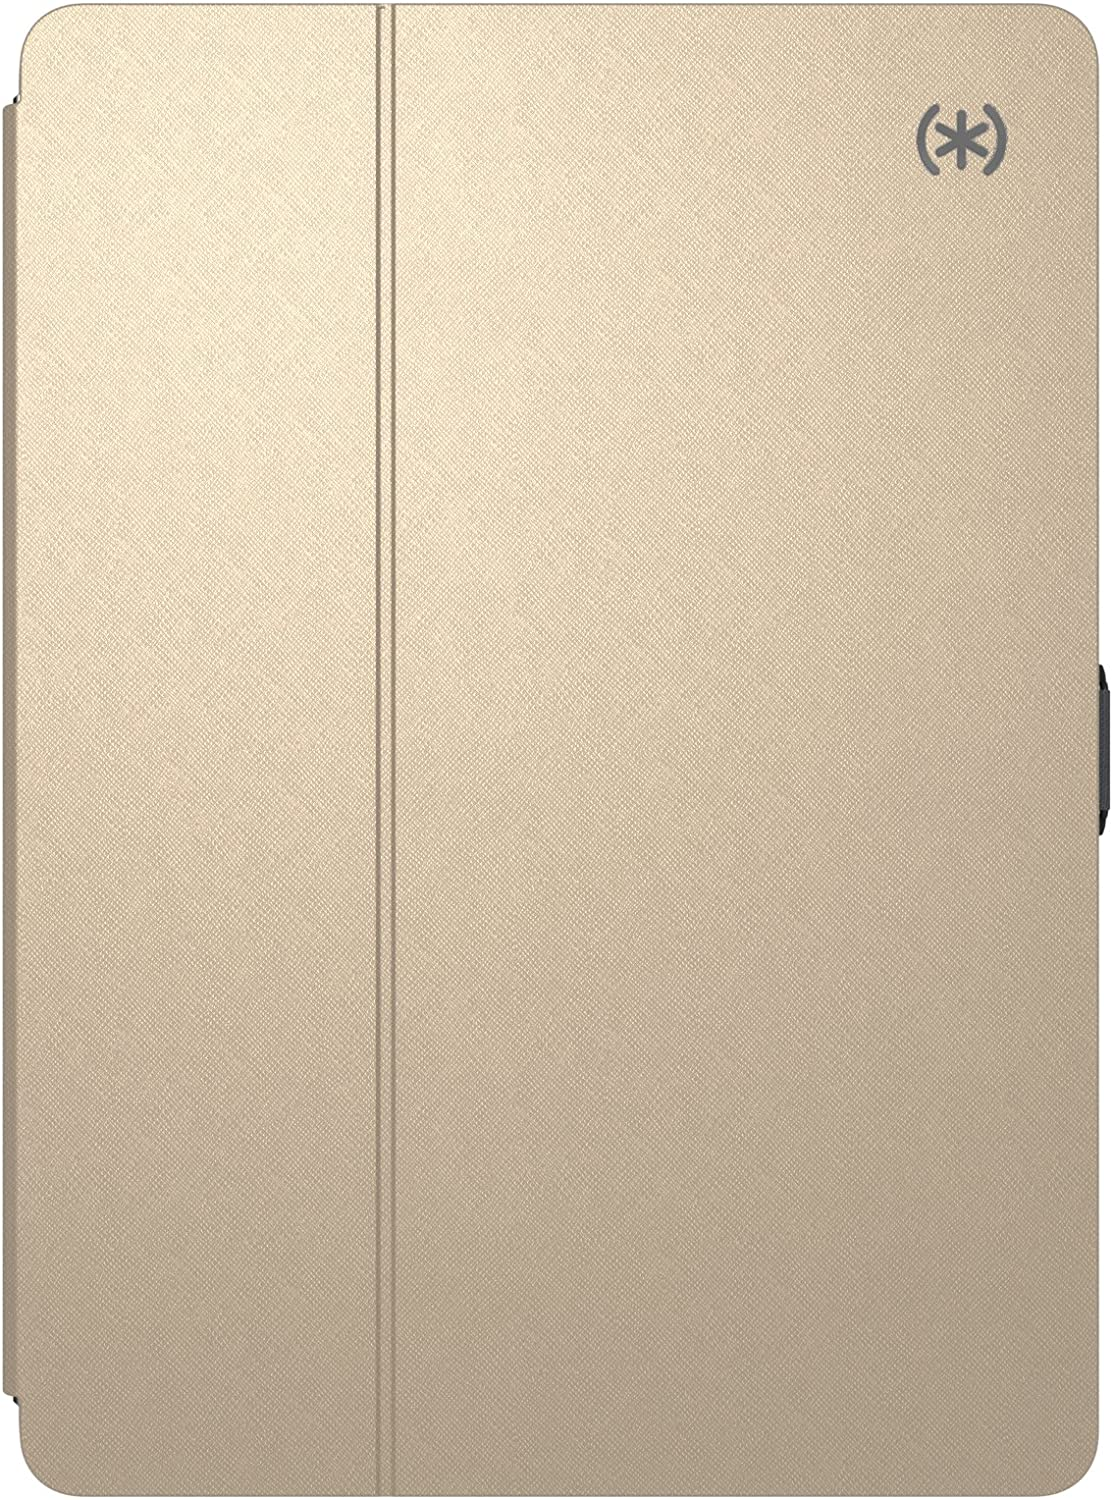 """Speck Products 92112-6254 Balance Folio Metallic Case and Stand for 9.7"""" iPad Cases (2017), Air and Air 2, White Gold/Graphite Grey"""